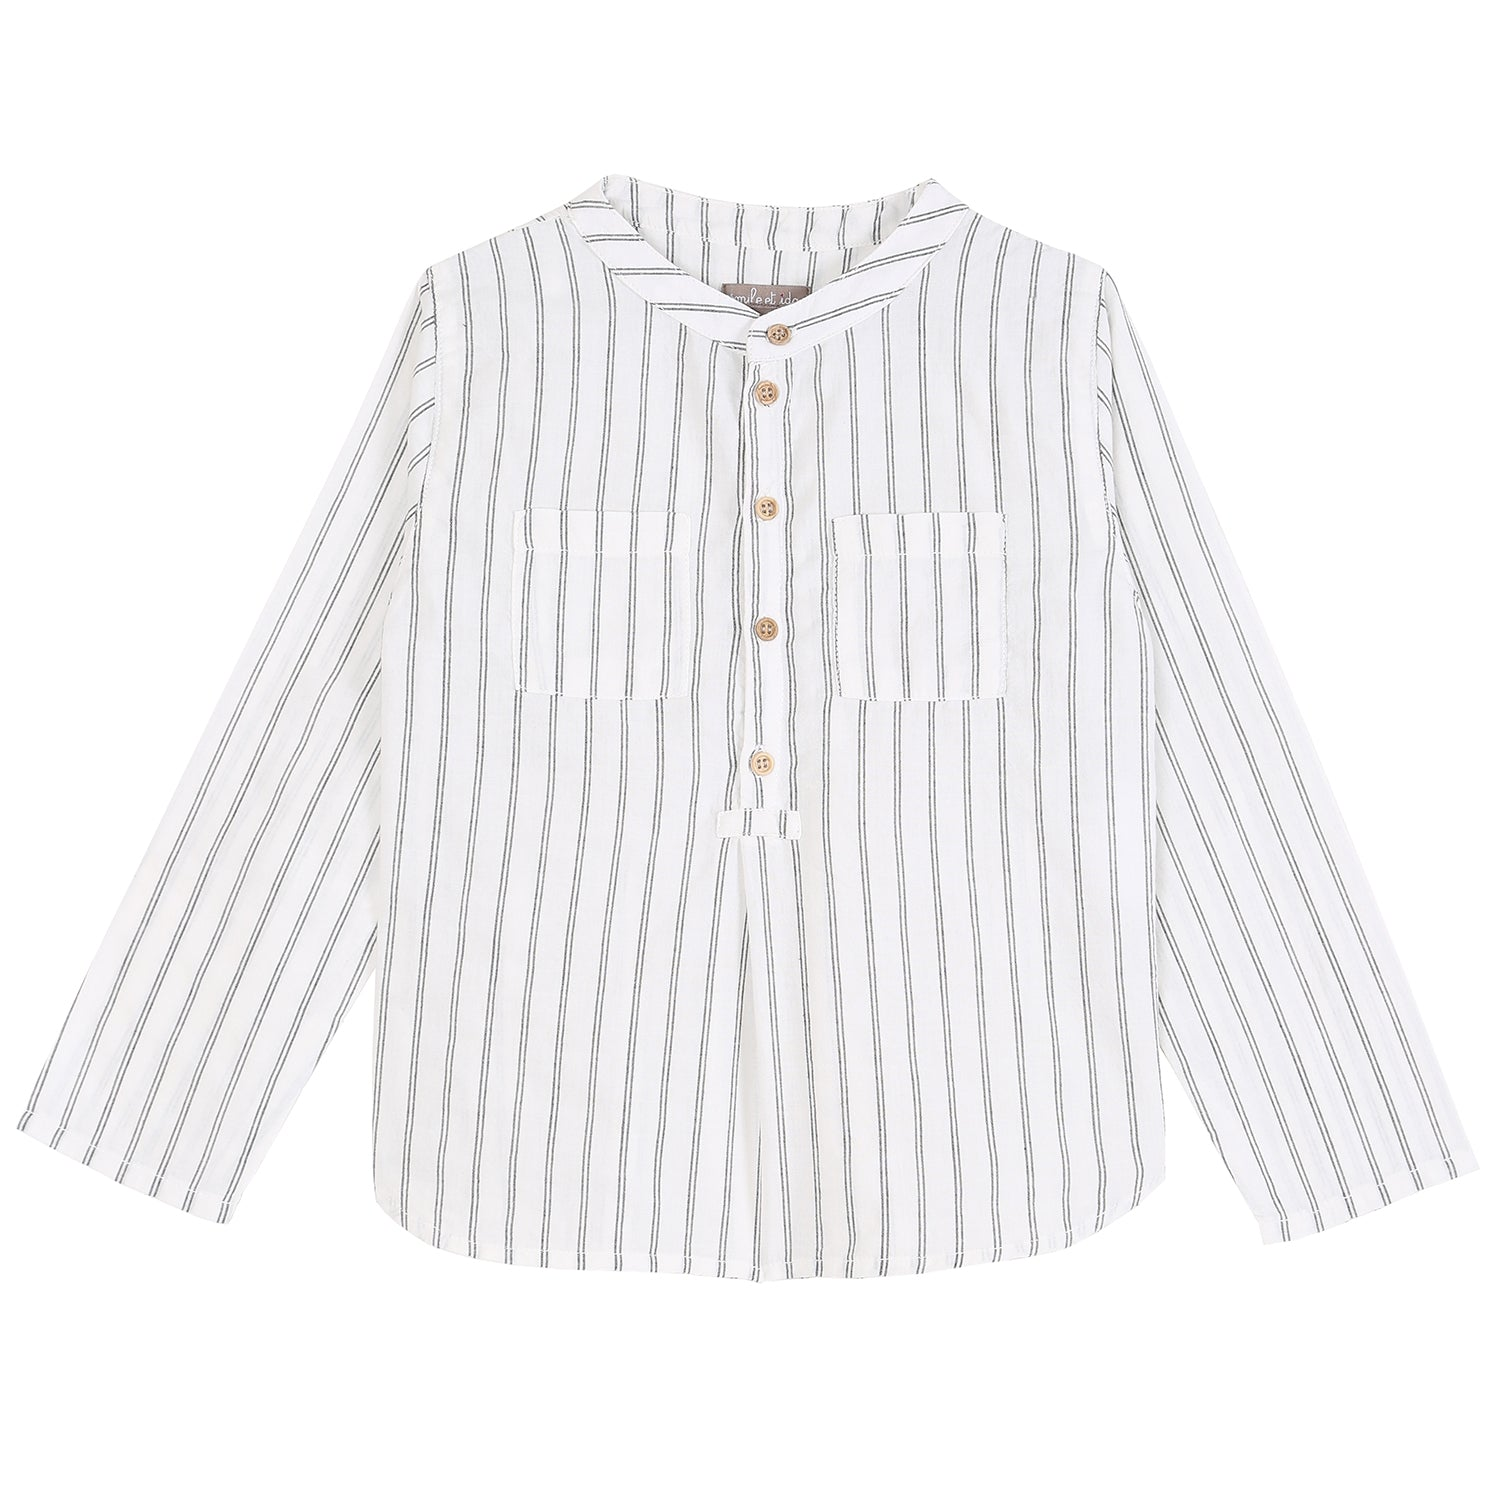 yoya, kids, boys, emile et ida, summer, casual, band collar, button front, long sleeved, shirt